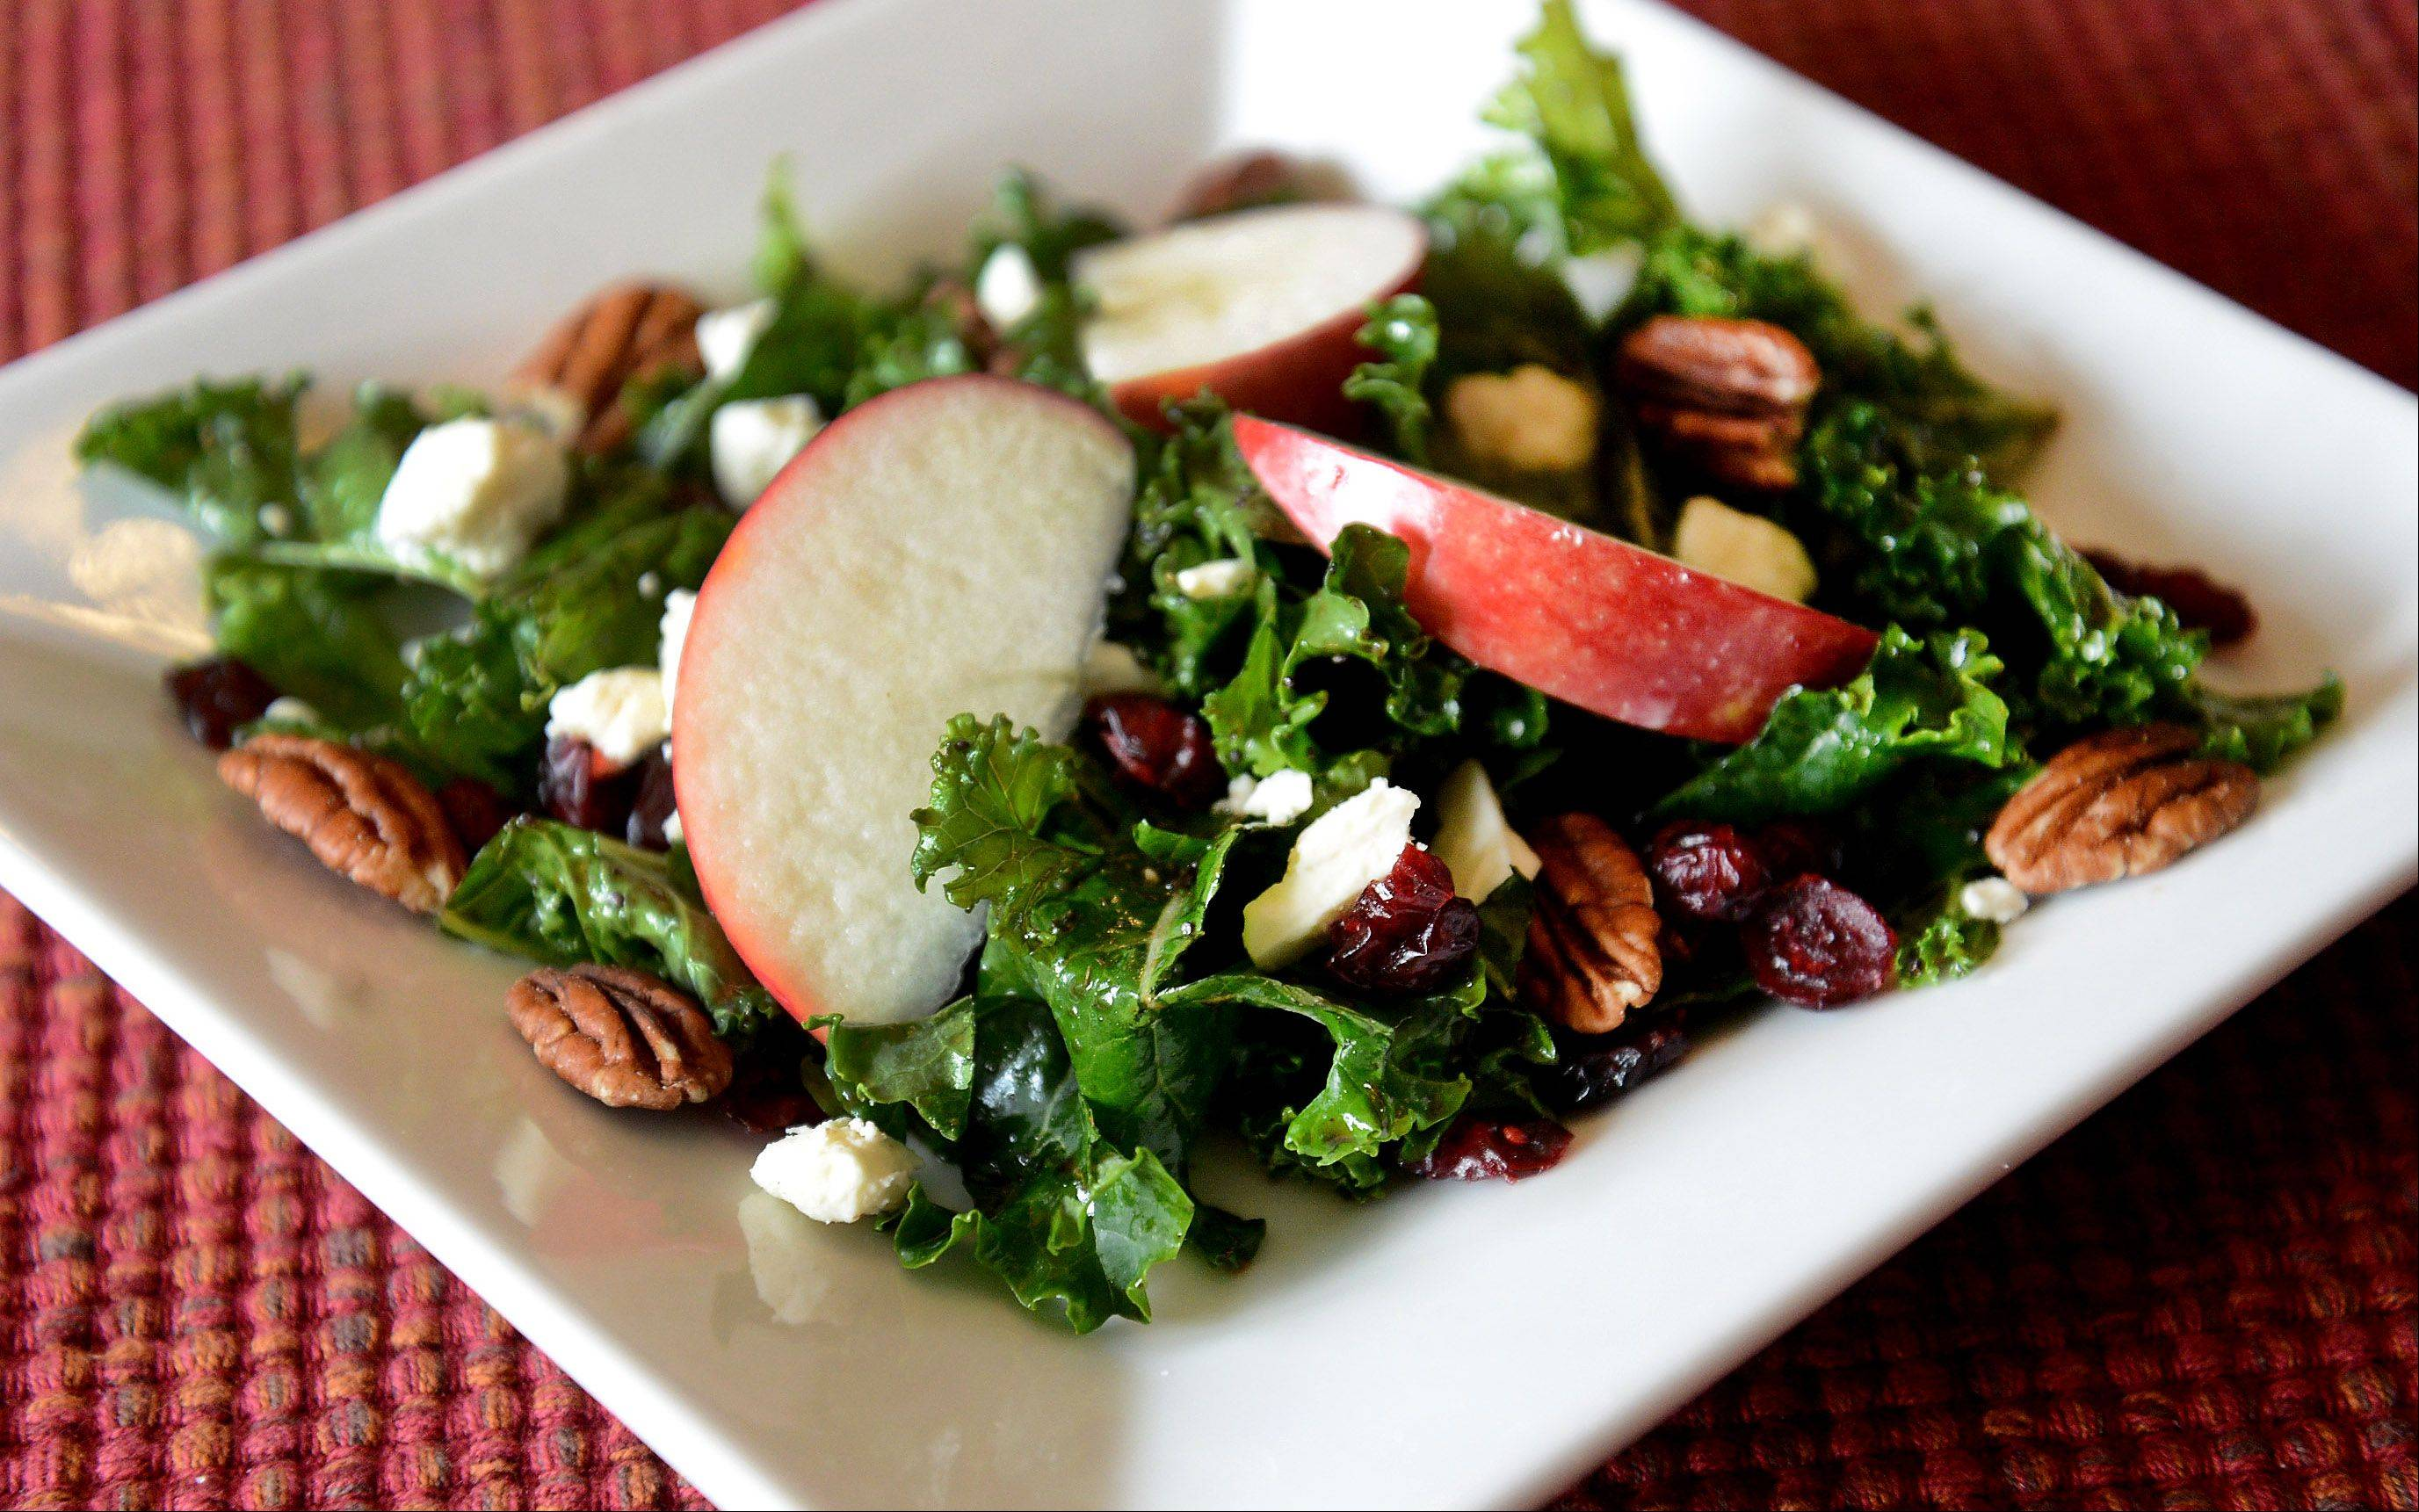 Joe Moninski�s apple- and cranberry-topped kale salad is festive for holiday entertaining.